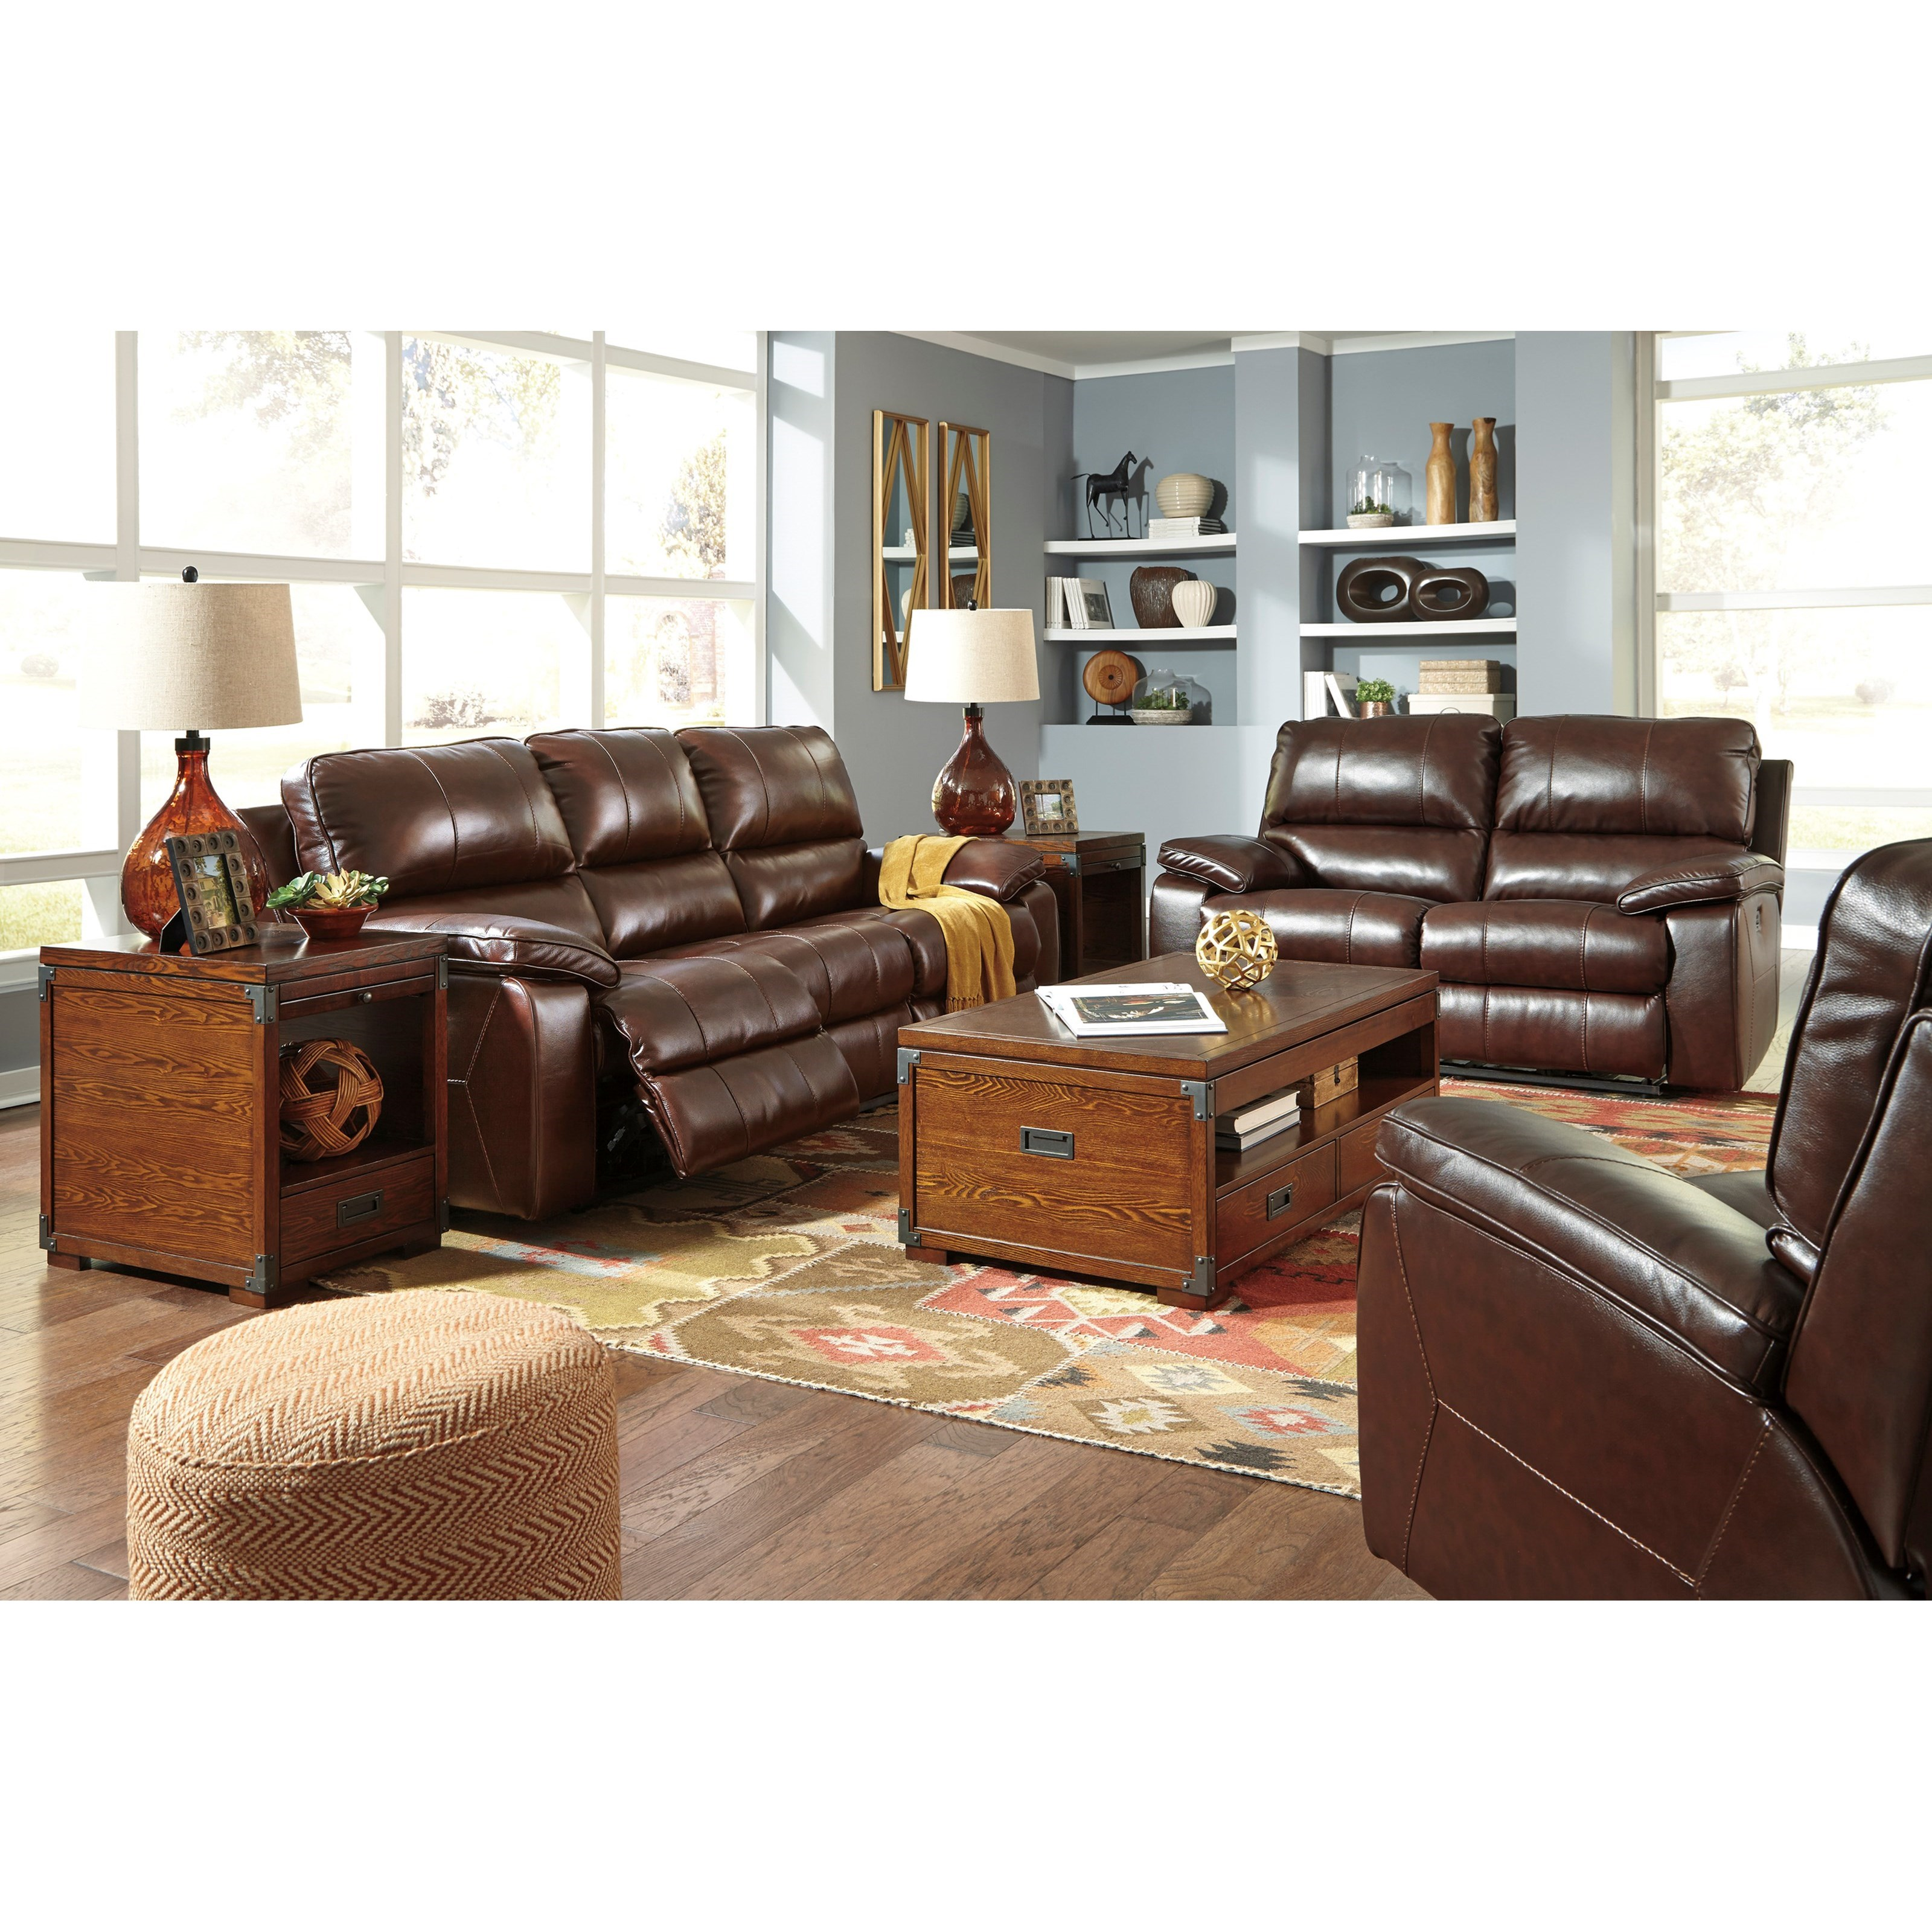 Signature Design by Ashley Transister Reclining Living Room Group - Item Number: 51302 Living Room Group 3